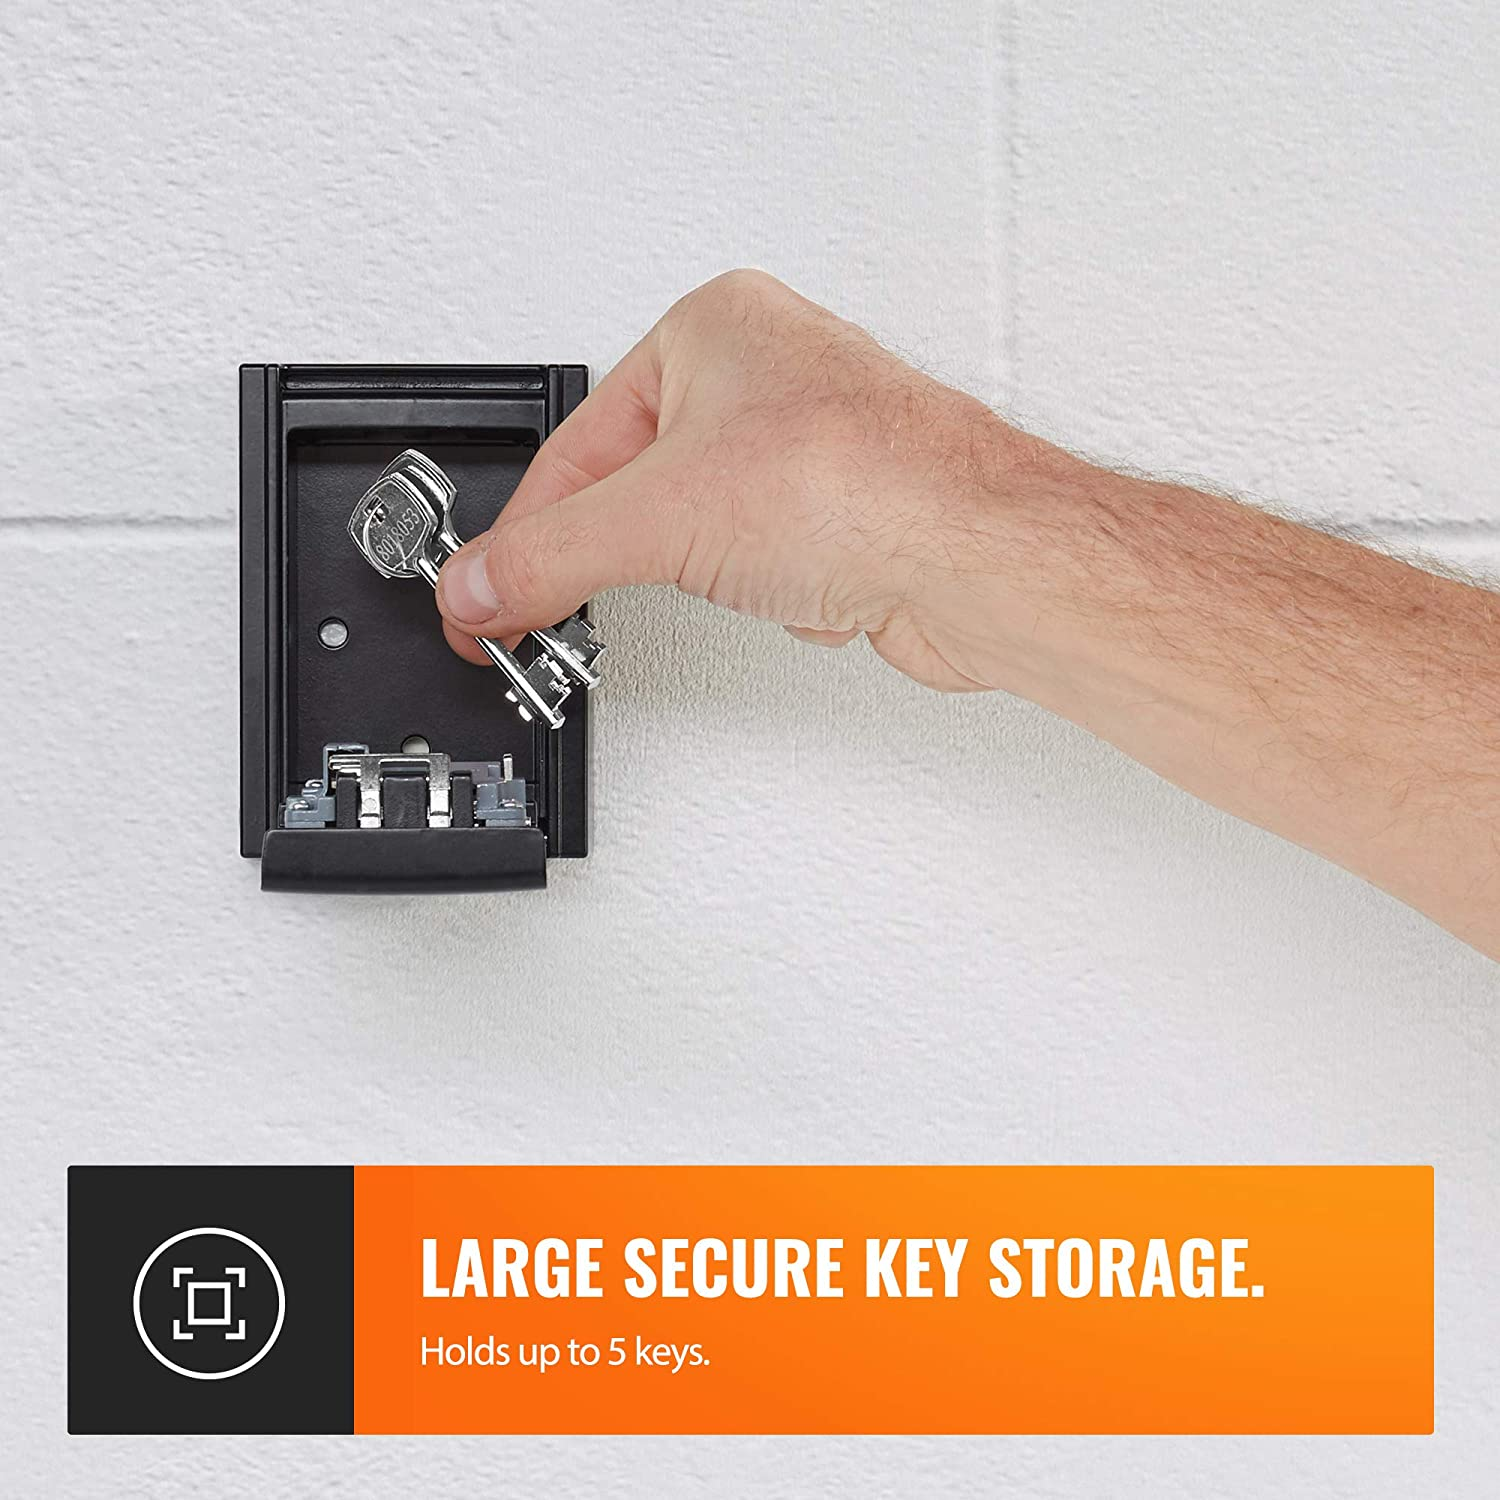 Secure Wall Mount Key Holder Code Combination Lock Durable Fits Multiple Keys Wall Mount Outside or Inside VonHaus Key Safe//Key Lock Storage Box Rust Resistant For Outdoor Use